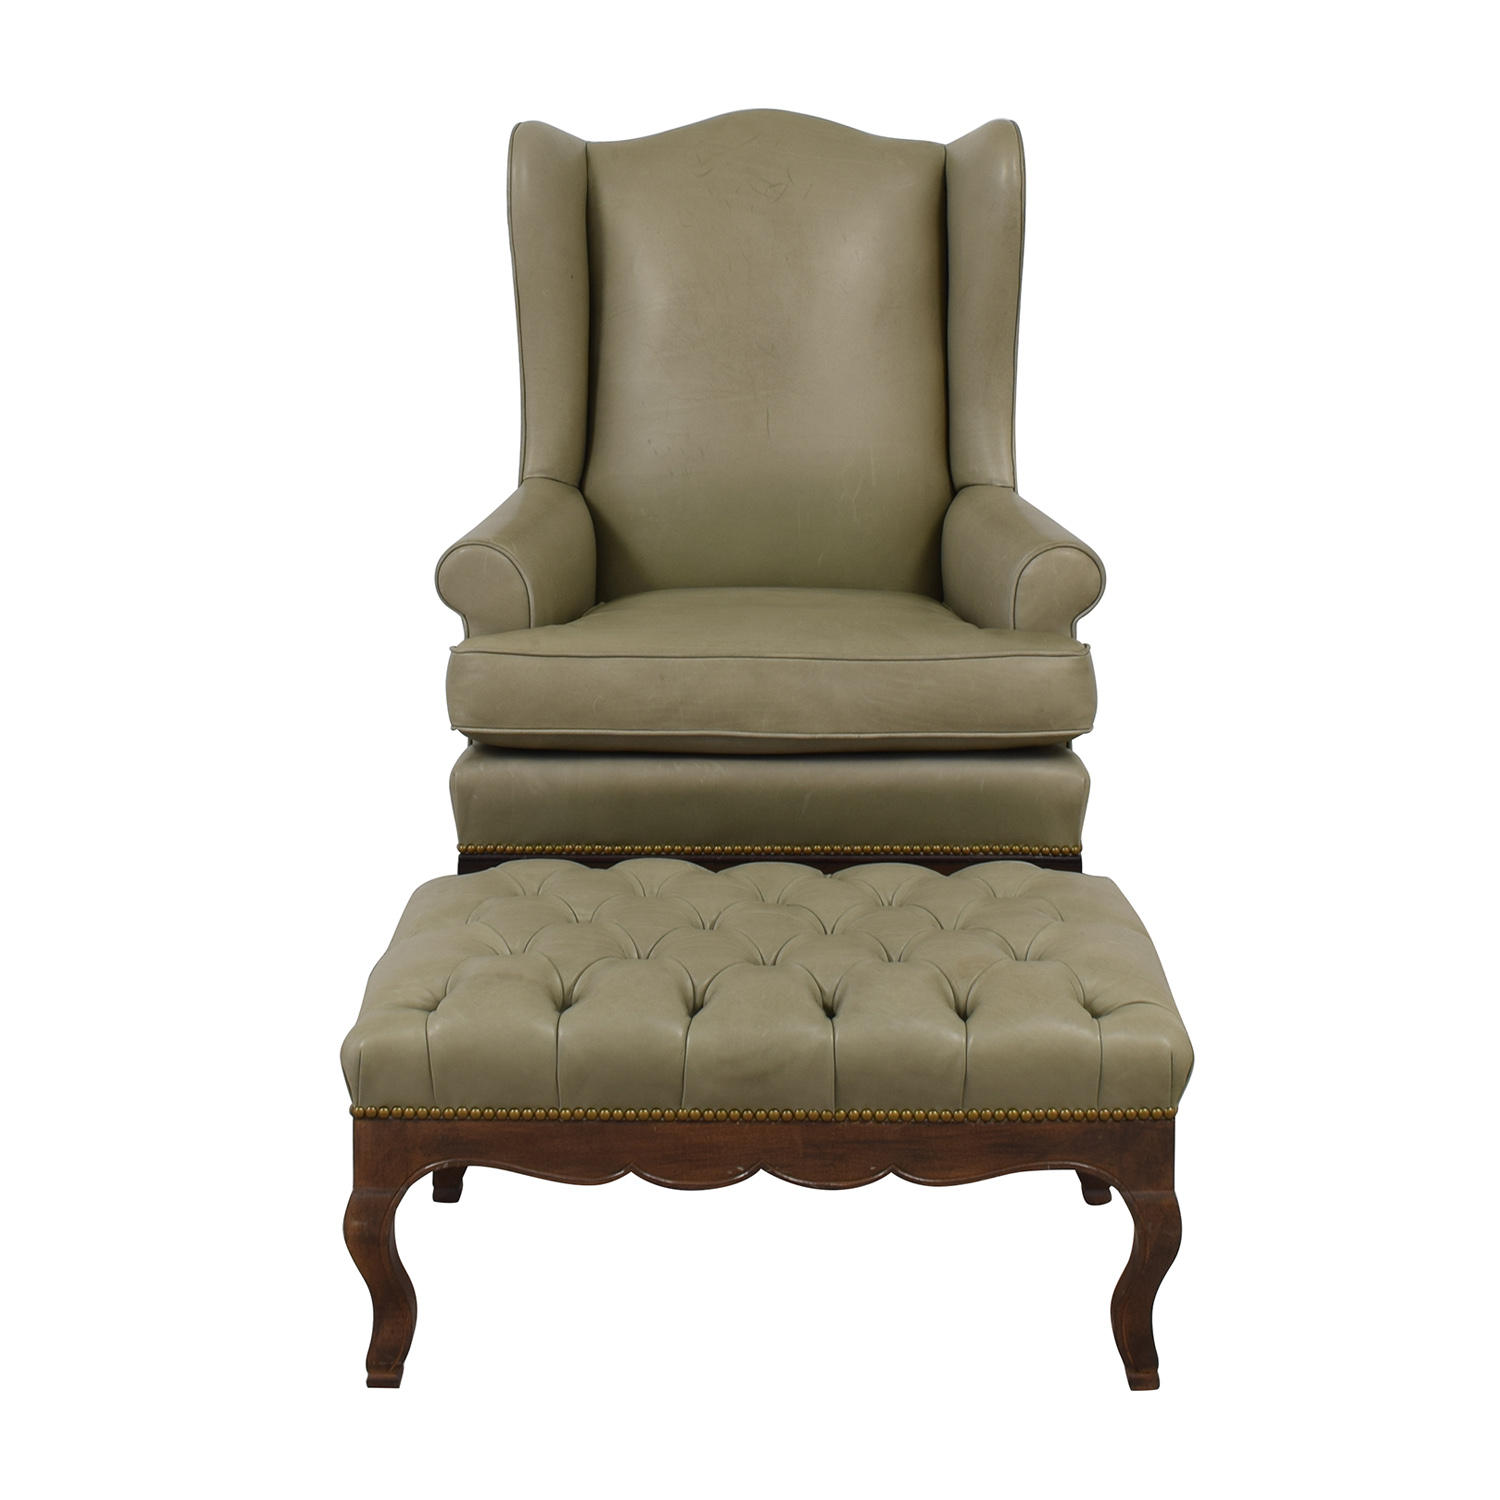 Wingback Tufted Chair 83 Off Green Leather Wing Back Chair With Tufted Ottoman Chairs